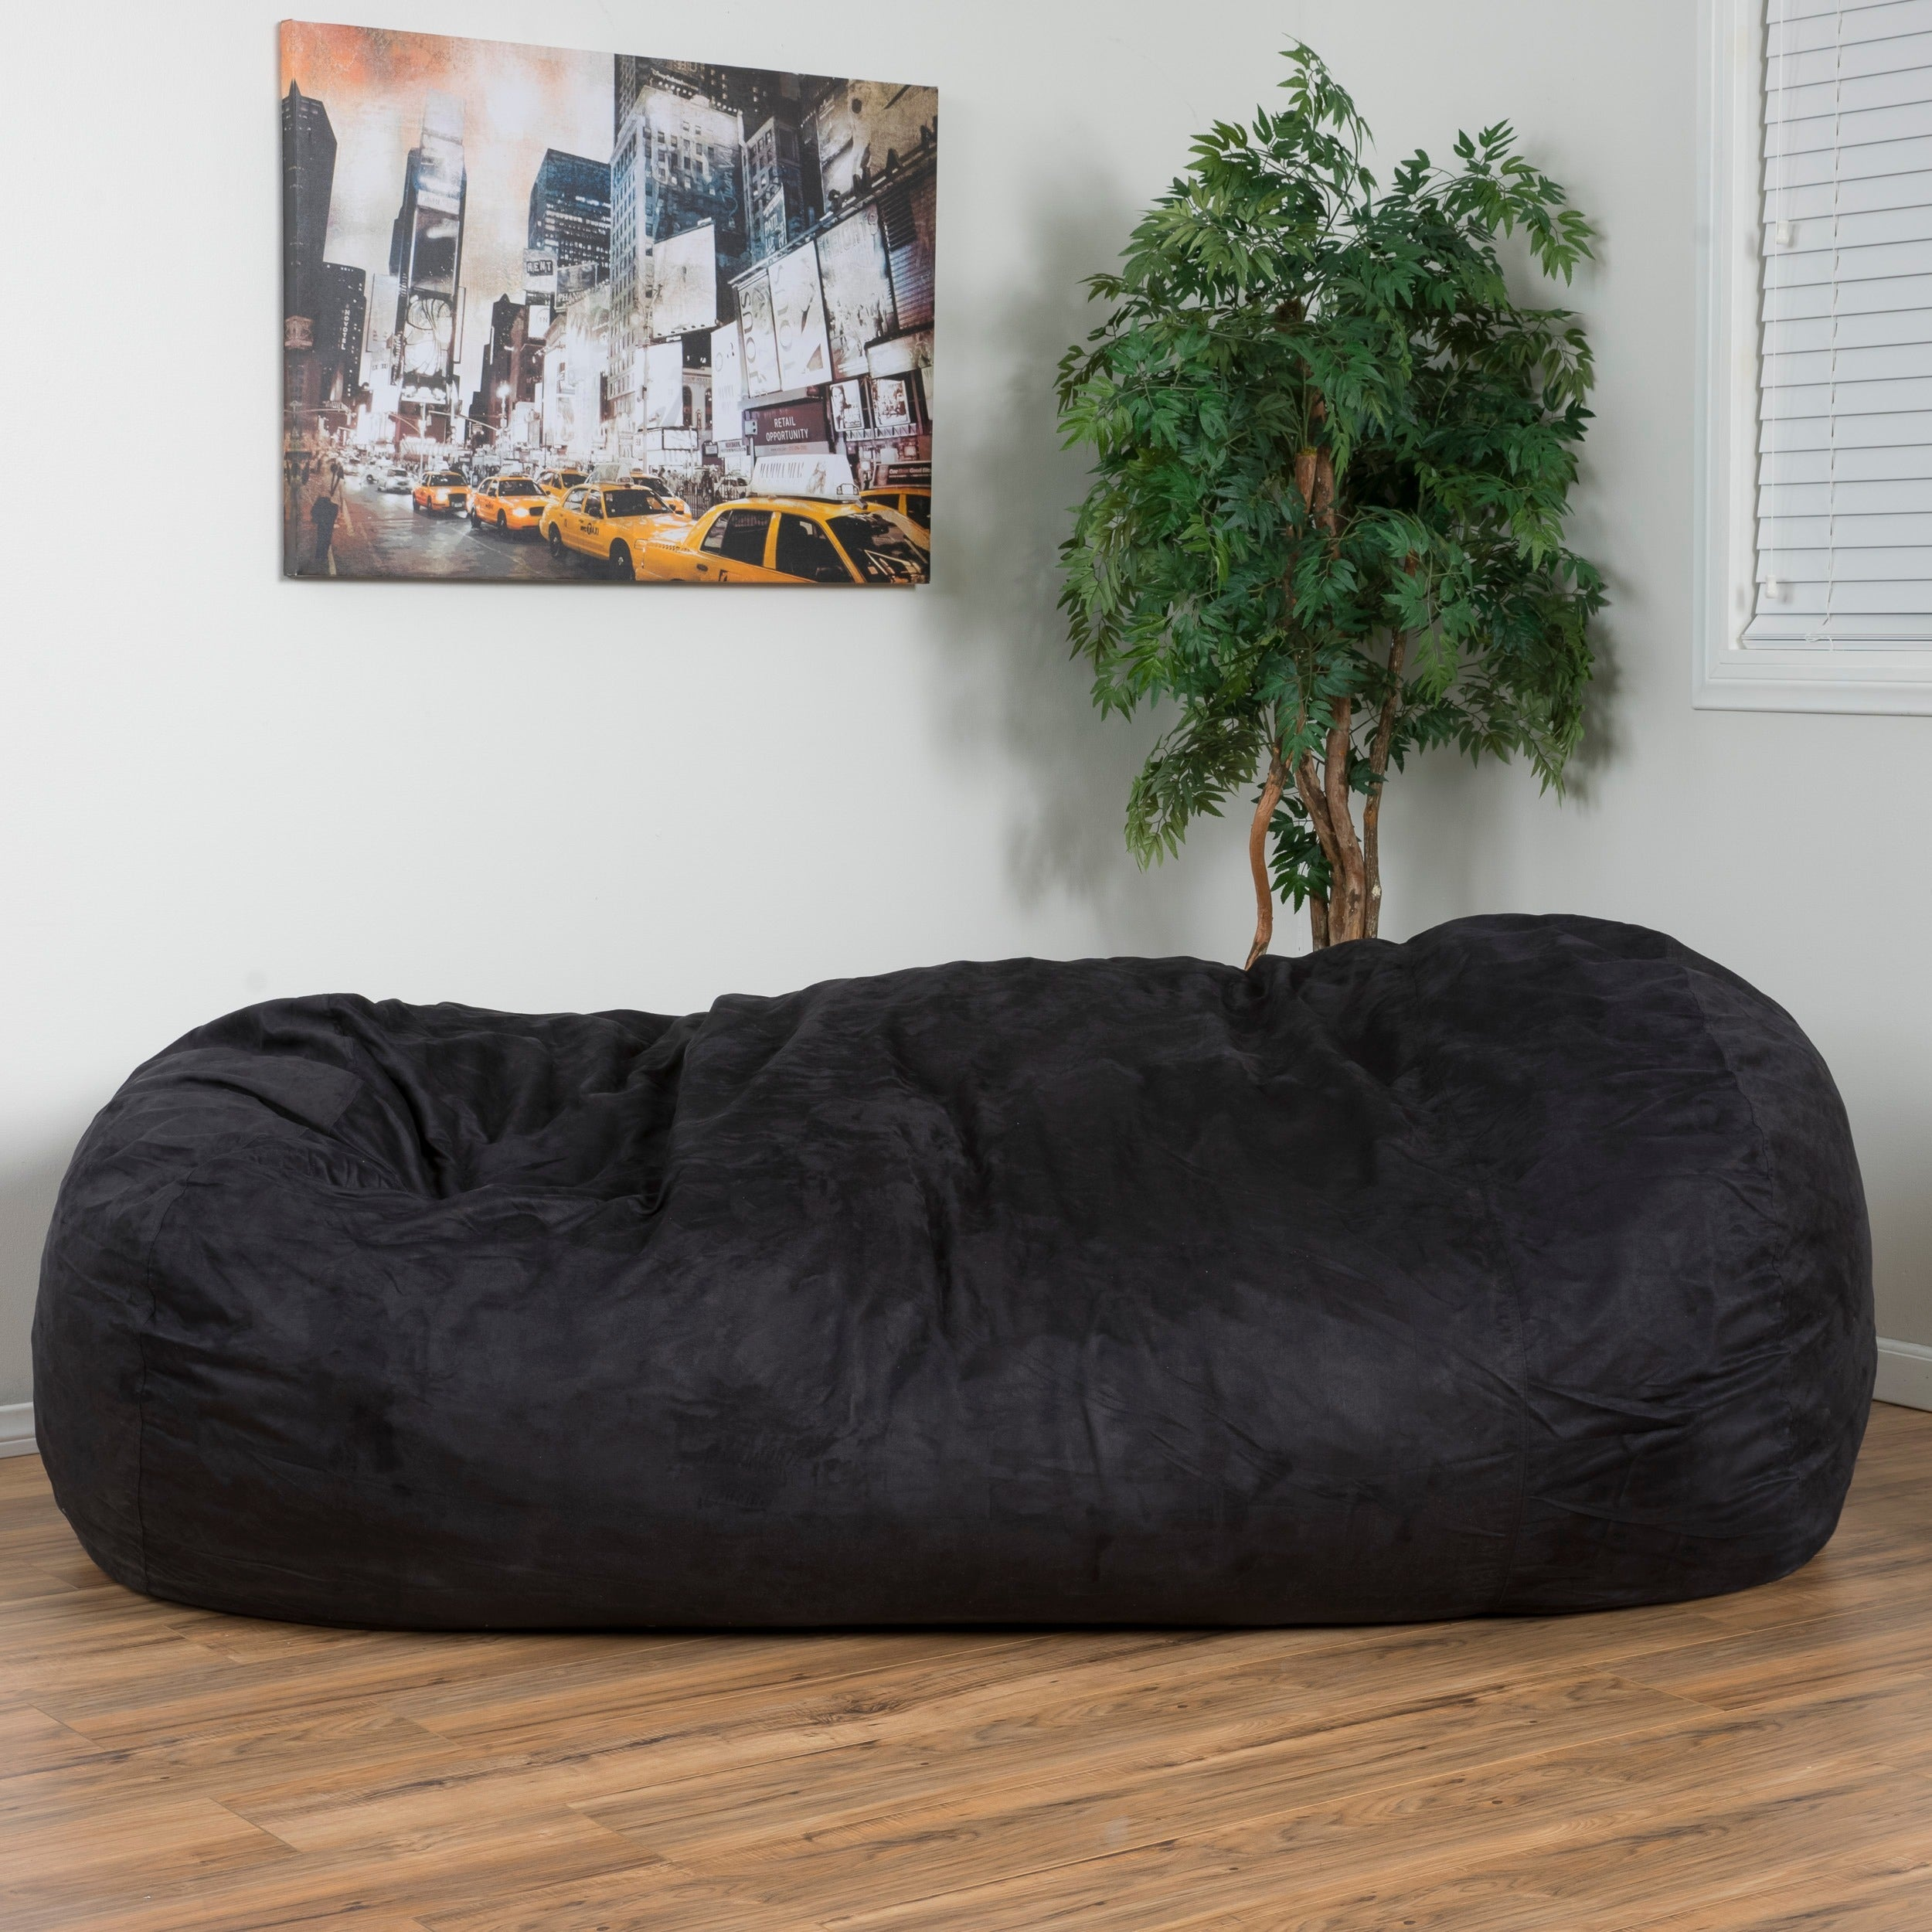 Pleasant Larson Faux Suede 8 Foot Lounge Beanbag Chair By Christopher Knight Home Squirreltailoven Fun Painted Chair Ideas Images Squirreltailovenorg